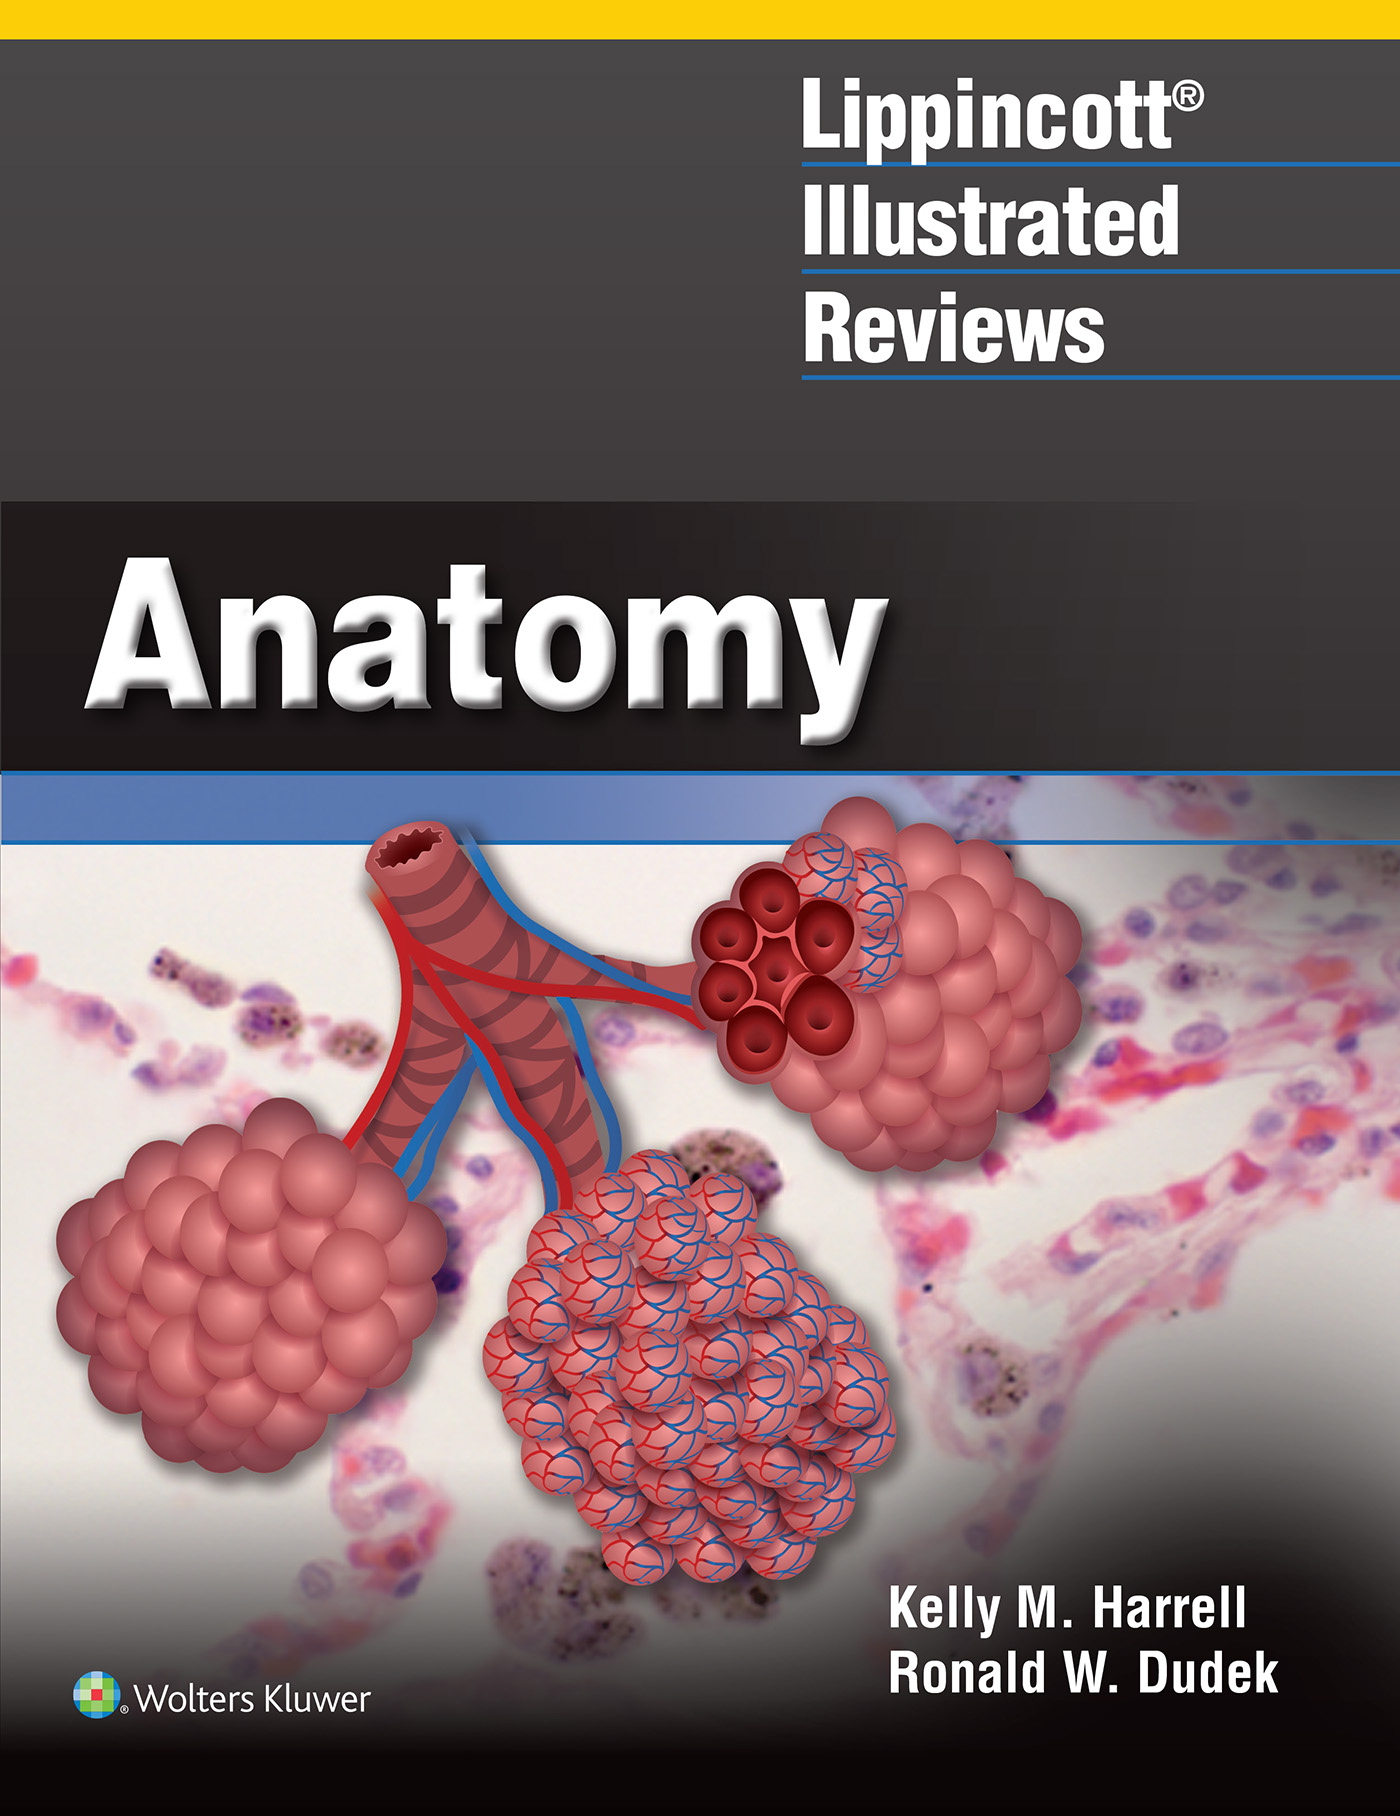 Lippincott Illustrated Review: Anatomy